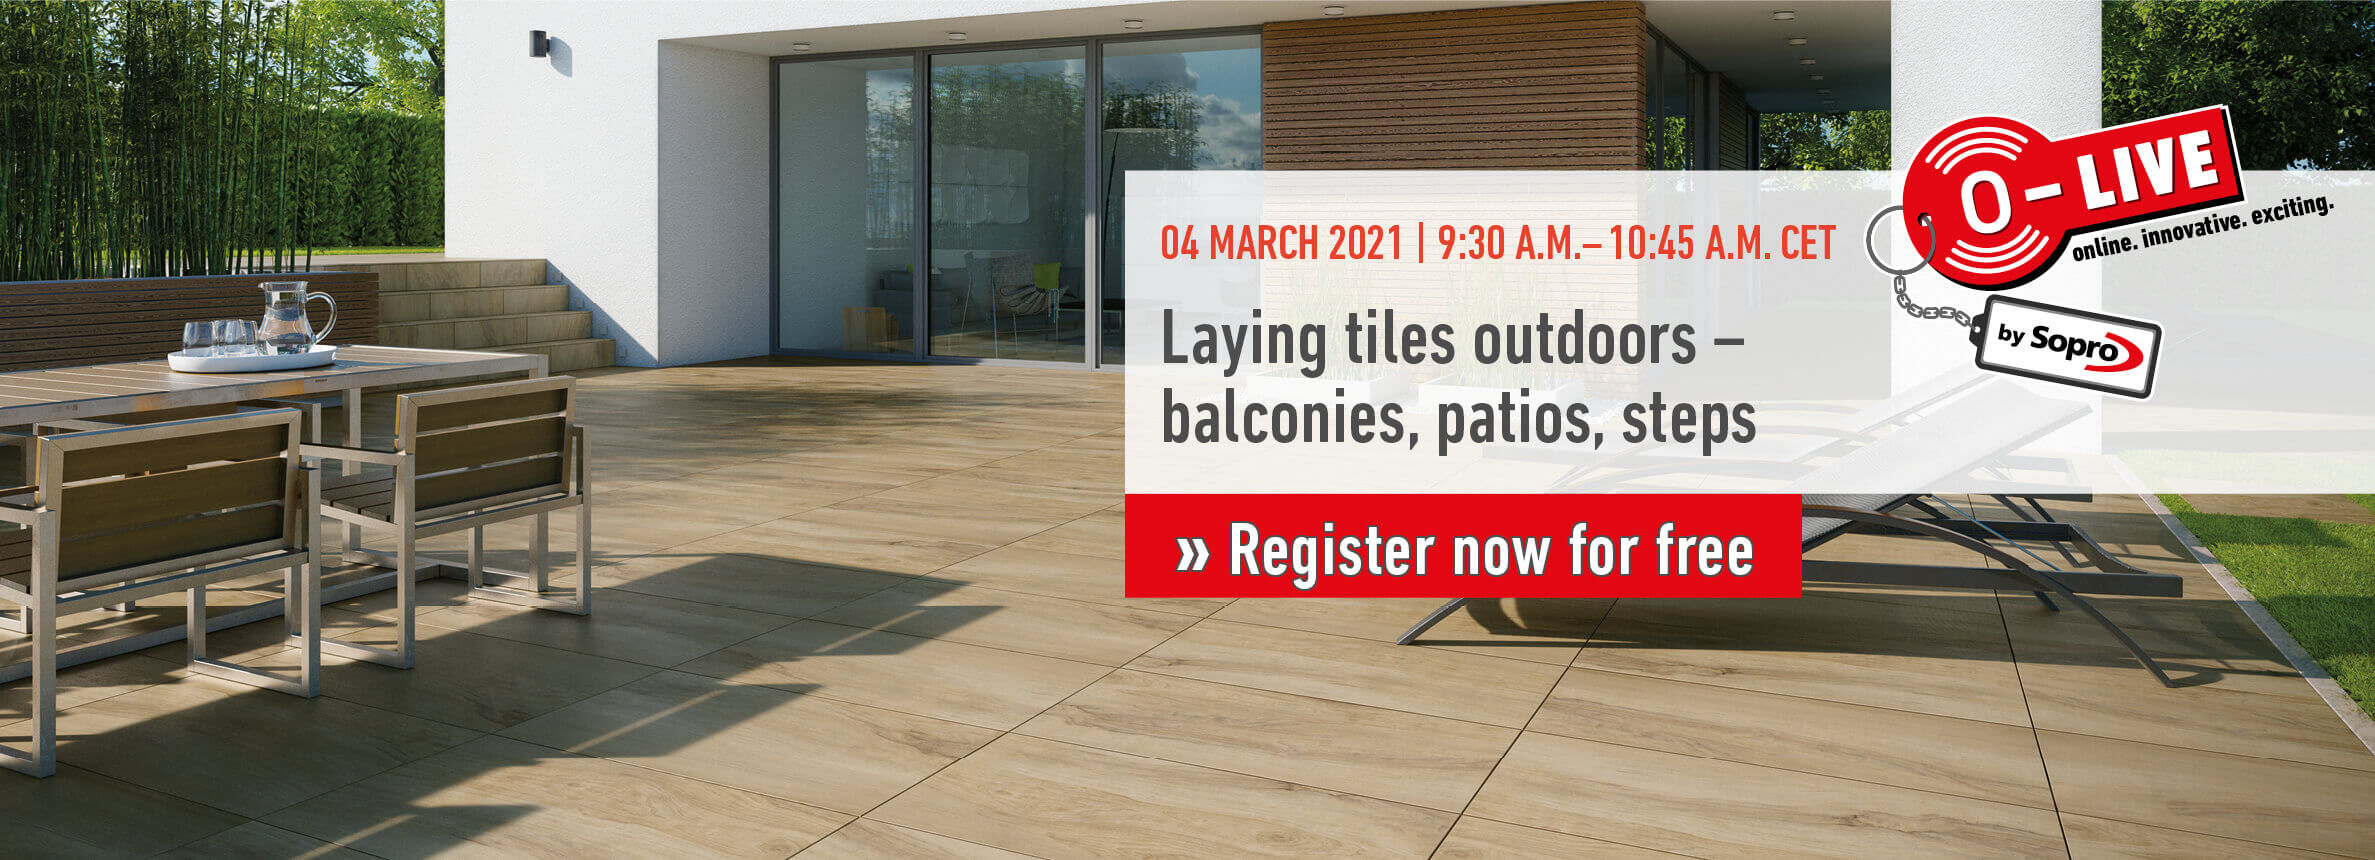 O-LIVE Show - Laying tiles outdoors - balconies ...